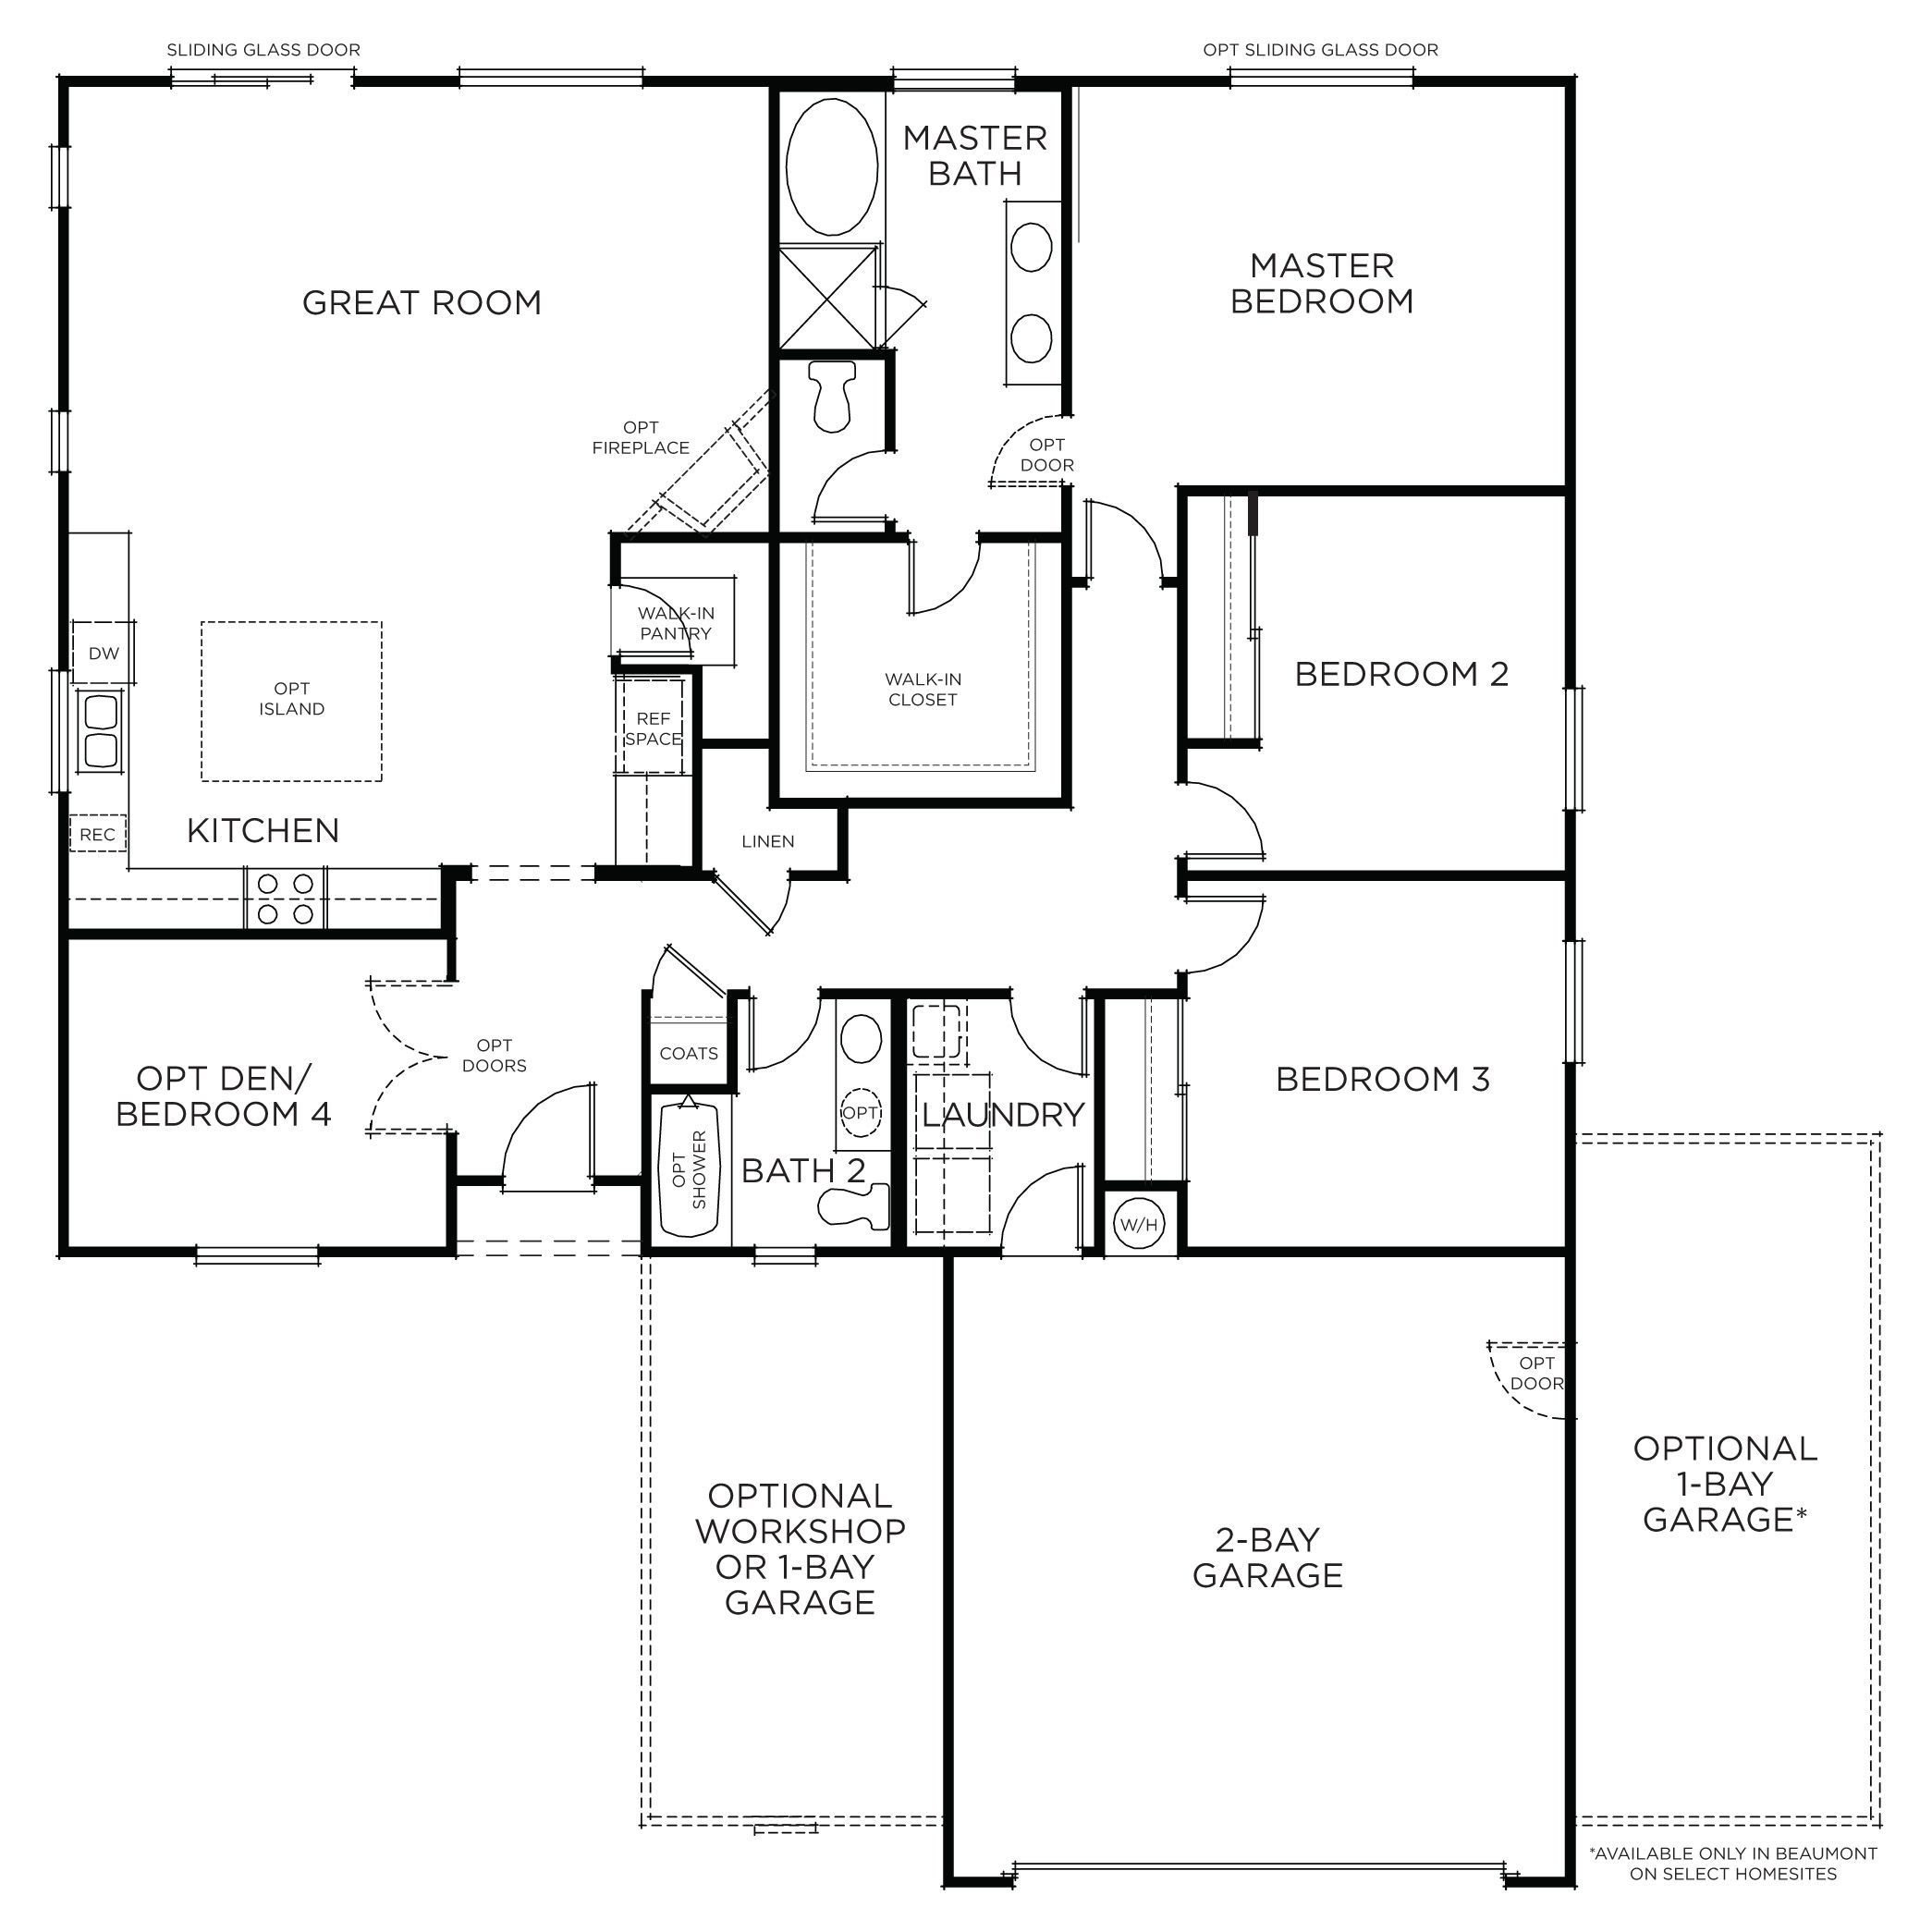 Pin By Pardee Homes On Inland Empire Pardee Homes Floor Plans Pardee Homes Build My Own House